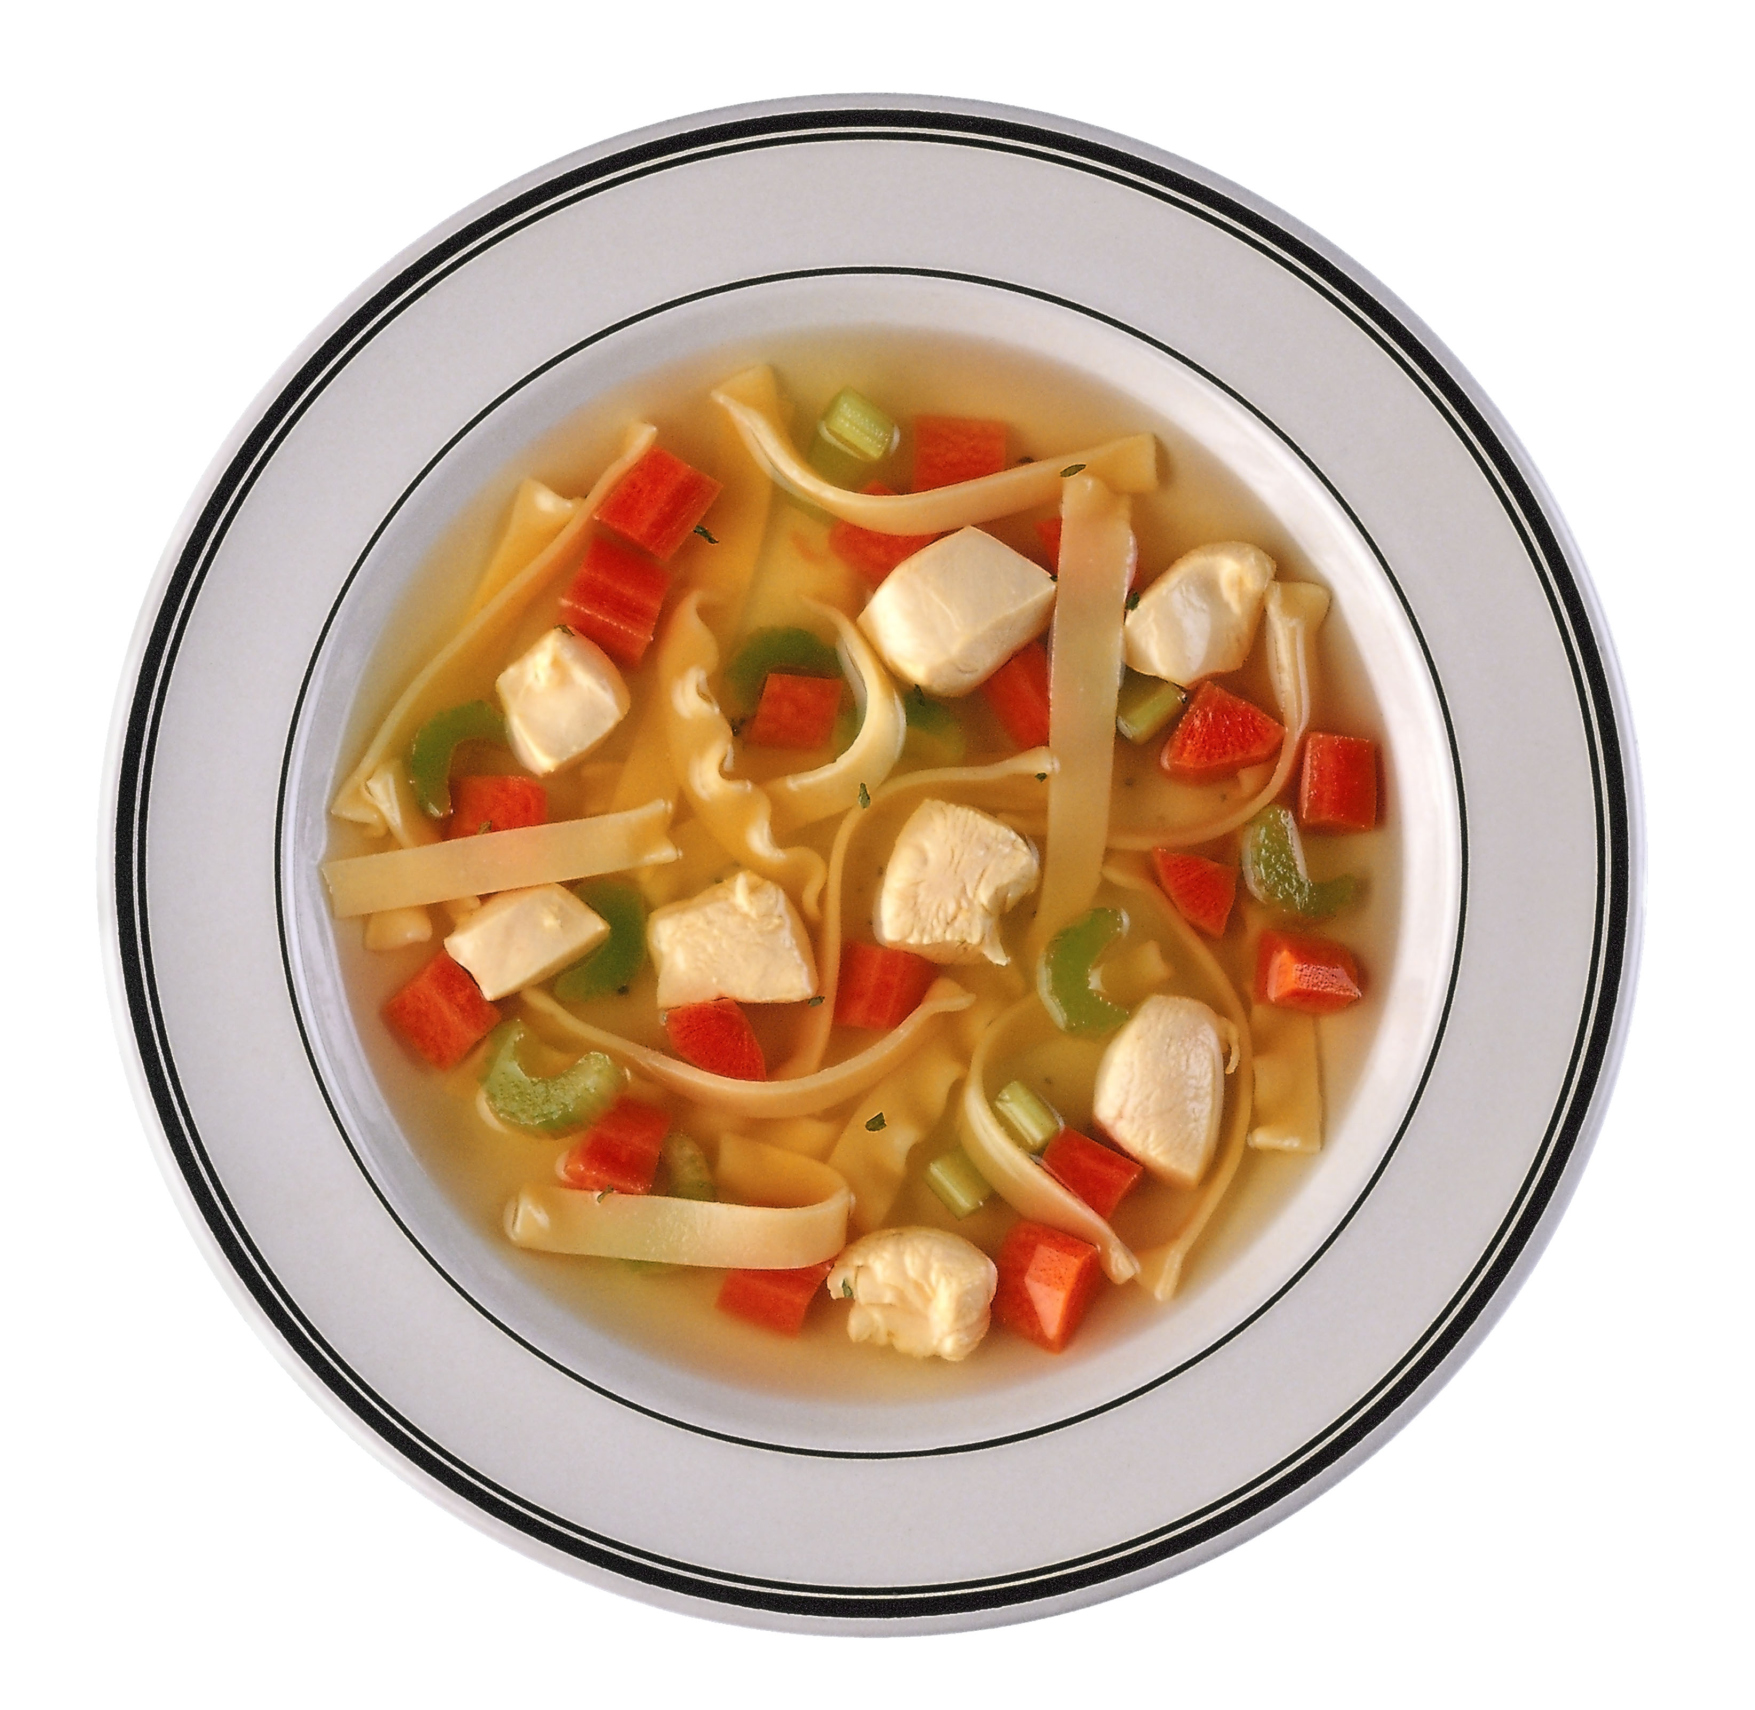 Eat soups - lose weight properly